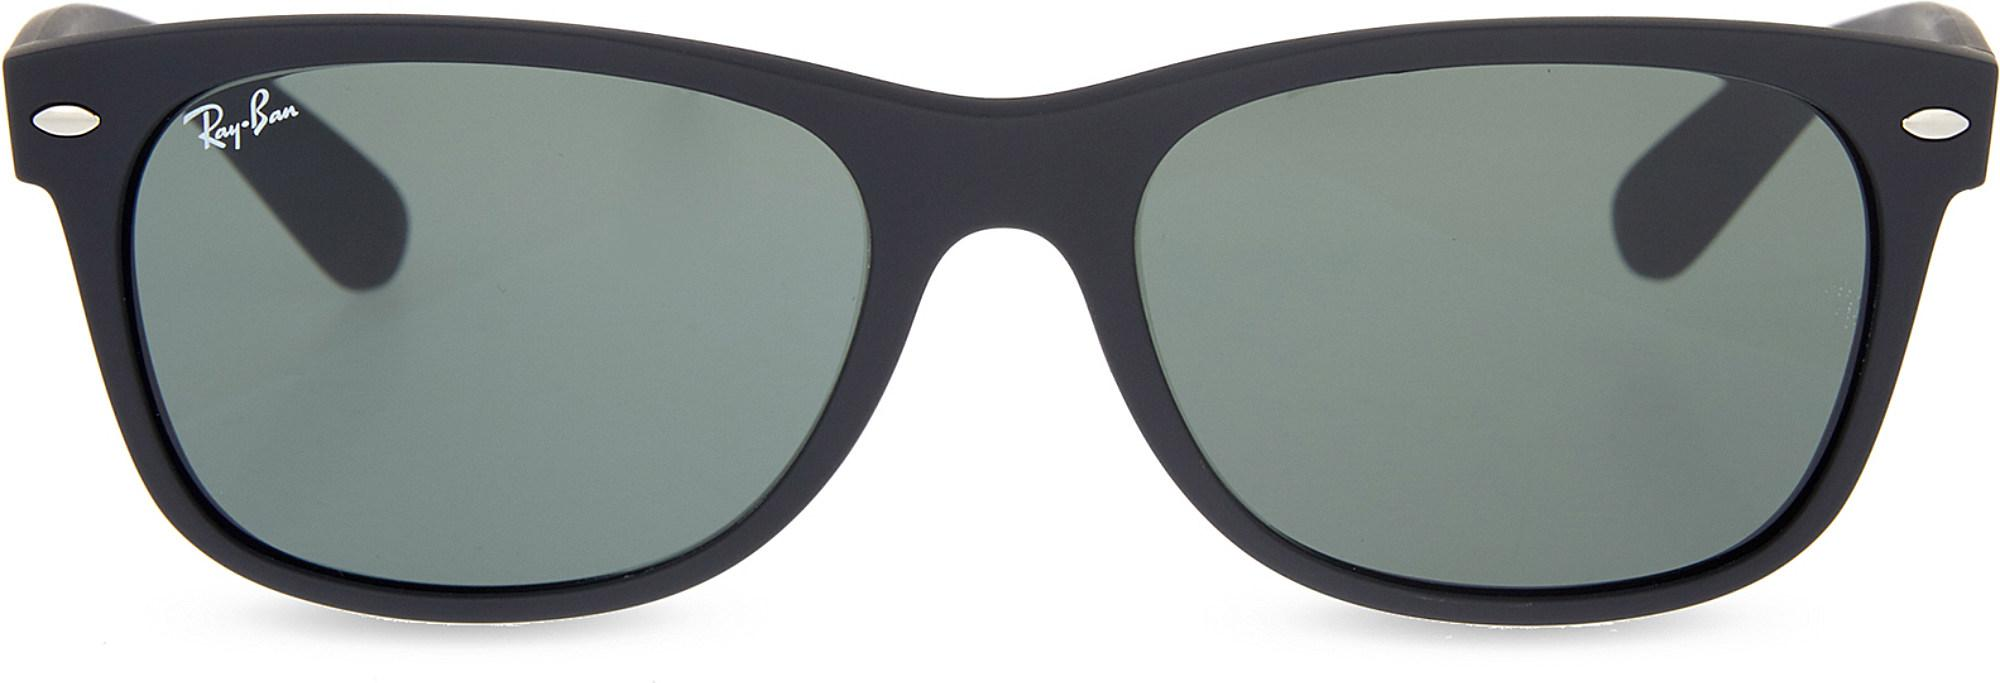 e7a2449267 Lyst - Ray-Ban Rb3132 New Wayfarer Sunglasses in Black - Save ...